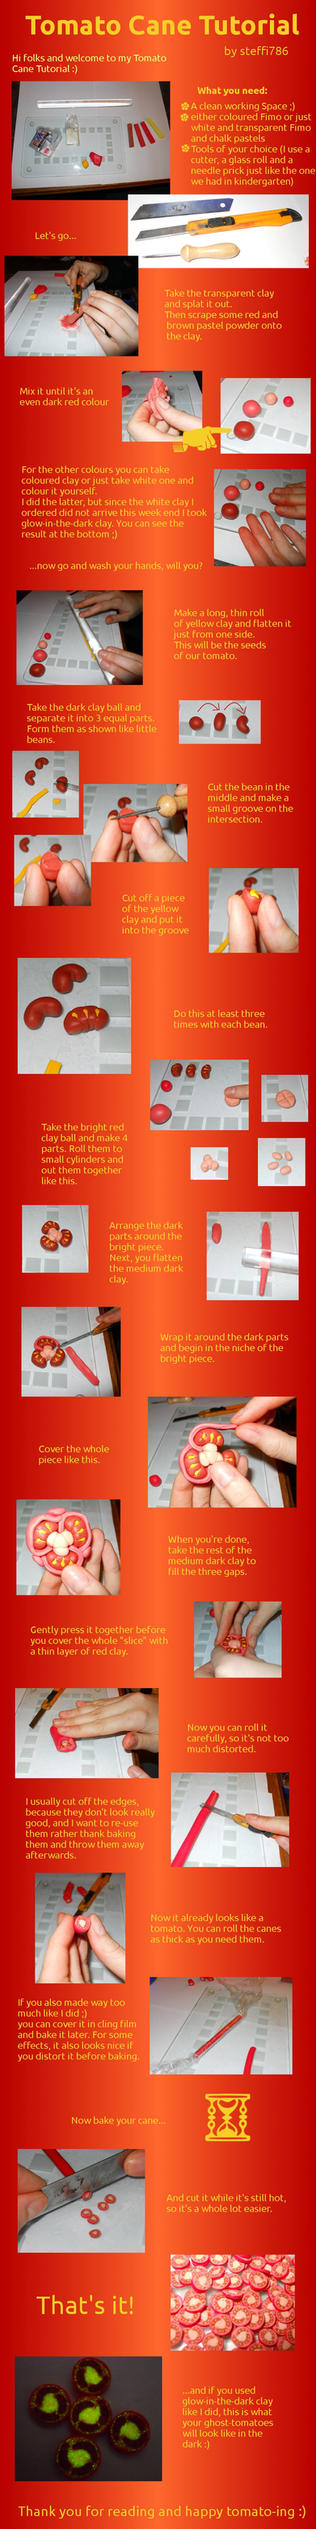 Tomato Cane Tutorial by geekySquirrel